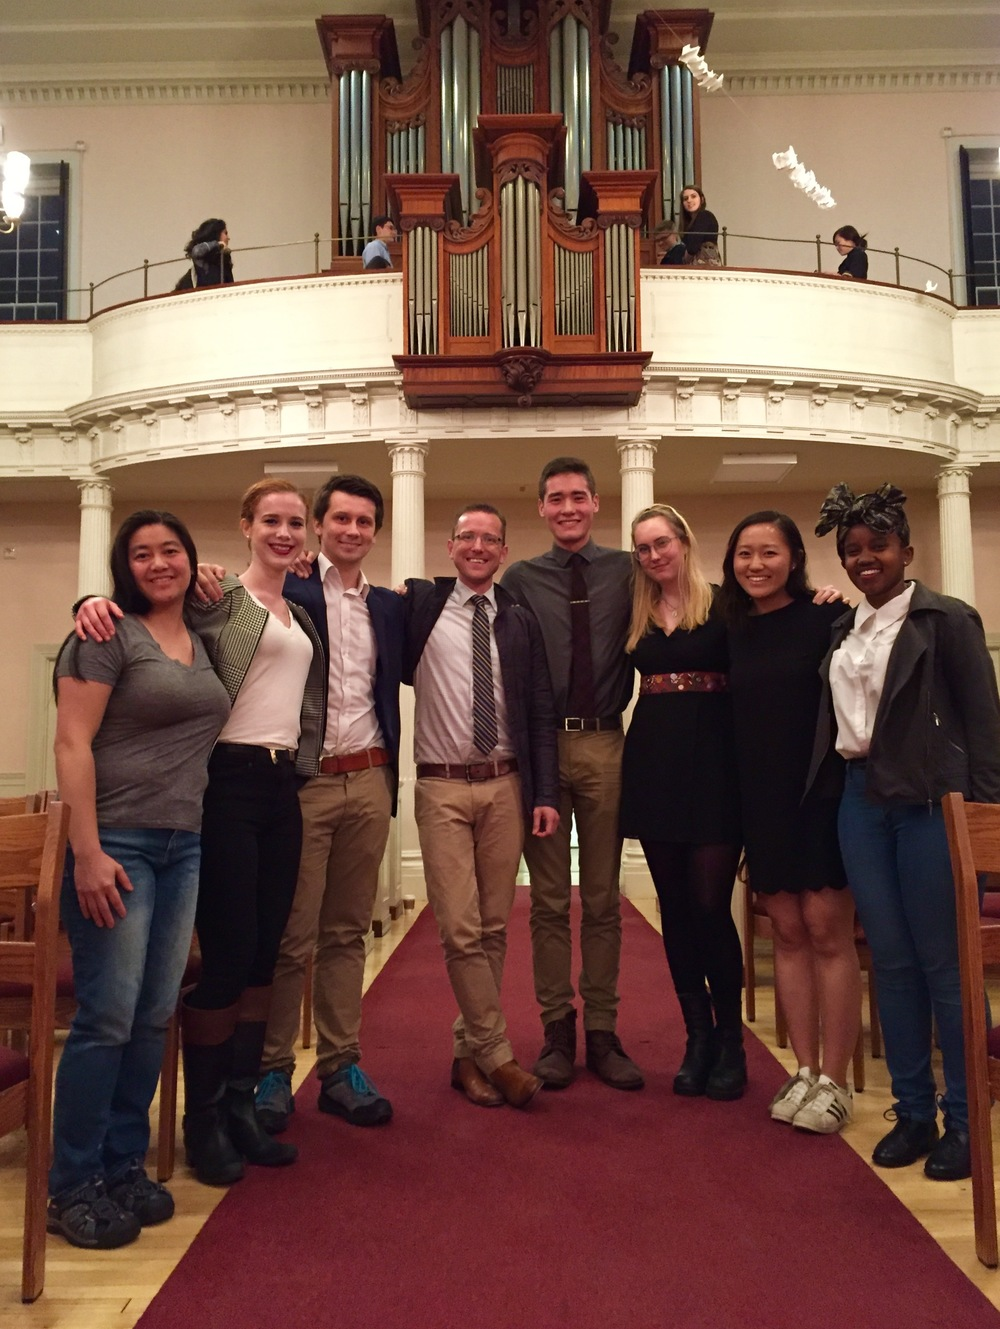 Christian Lane with students at Old West Church